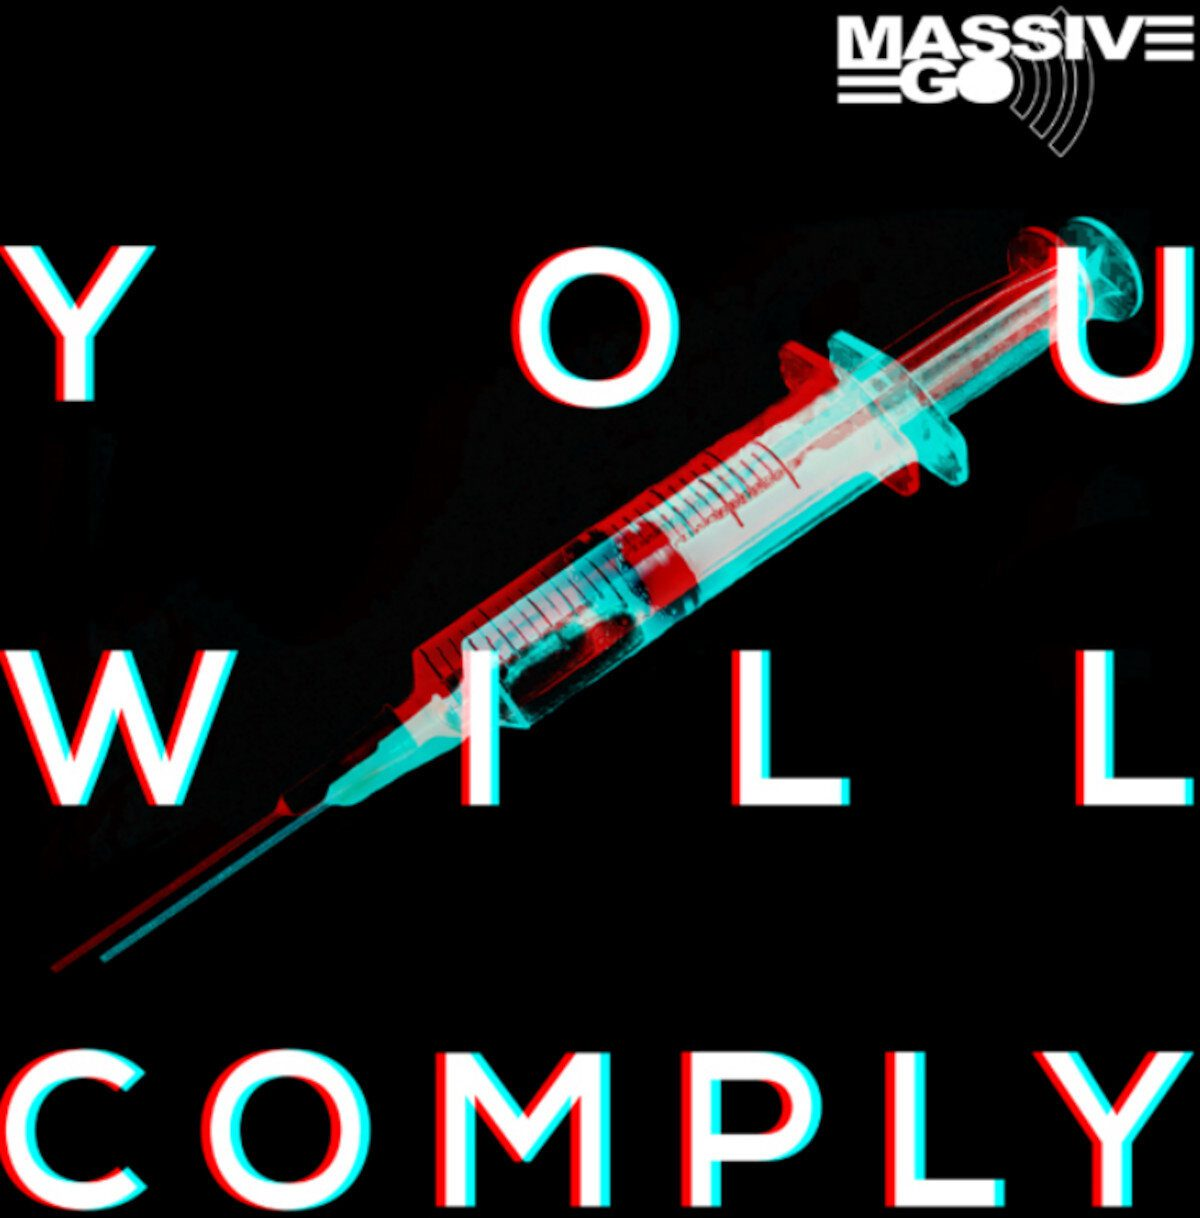 Massive Ego are back with all new single 'You will comply'